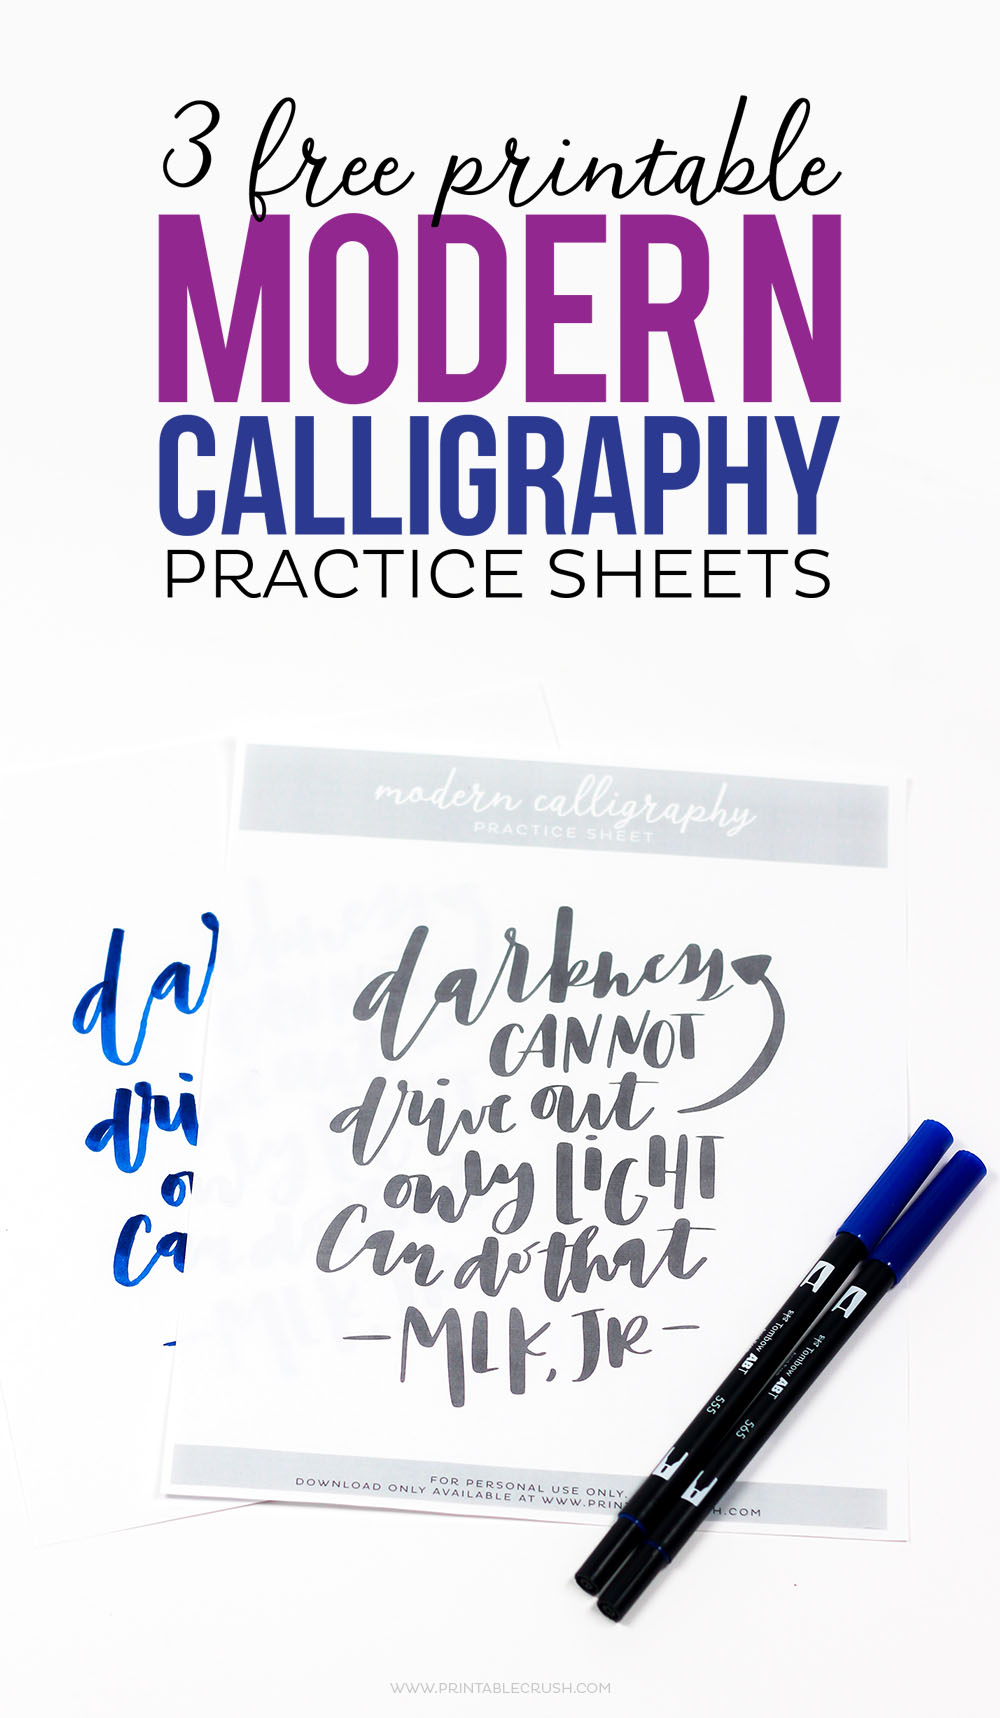 photo about Calligraphy Practice Sheets Printable Free identified as 3 Totally free Printable Revolutionary Calligraphy Coach Sheets